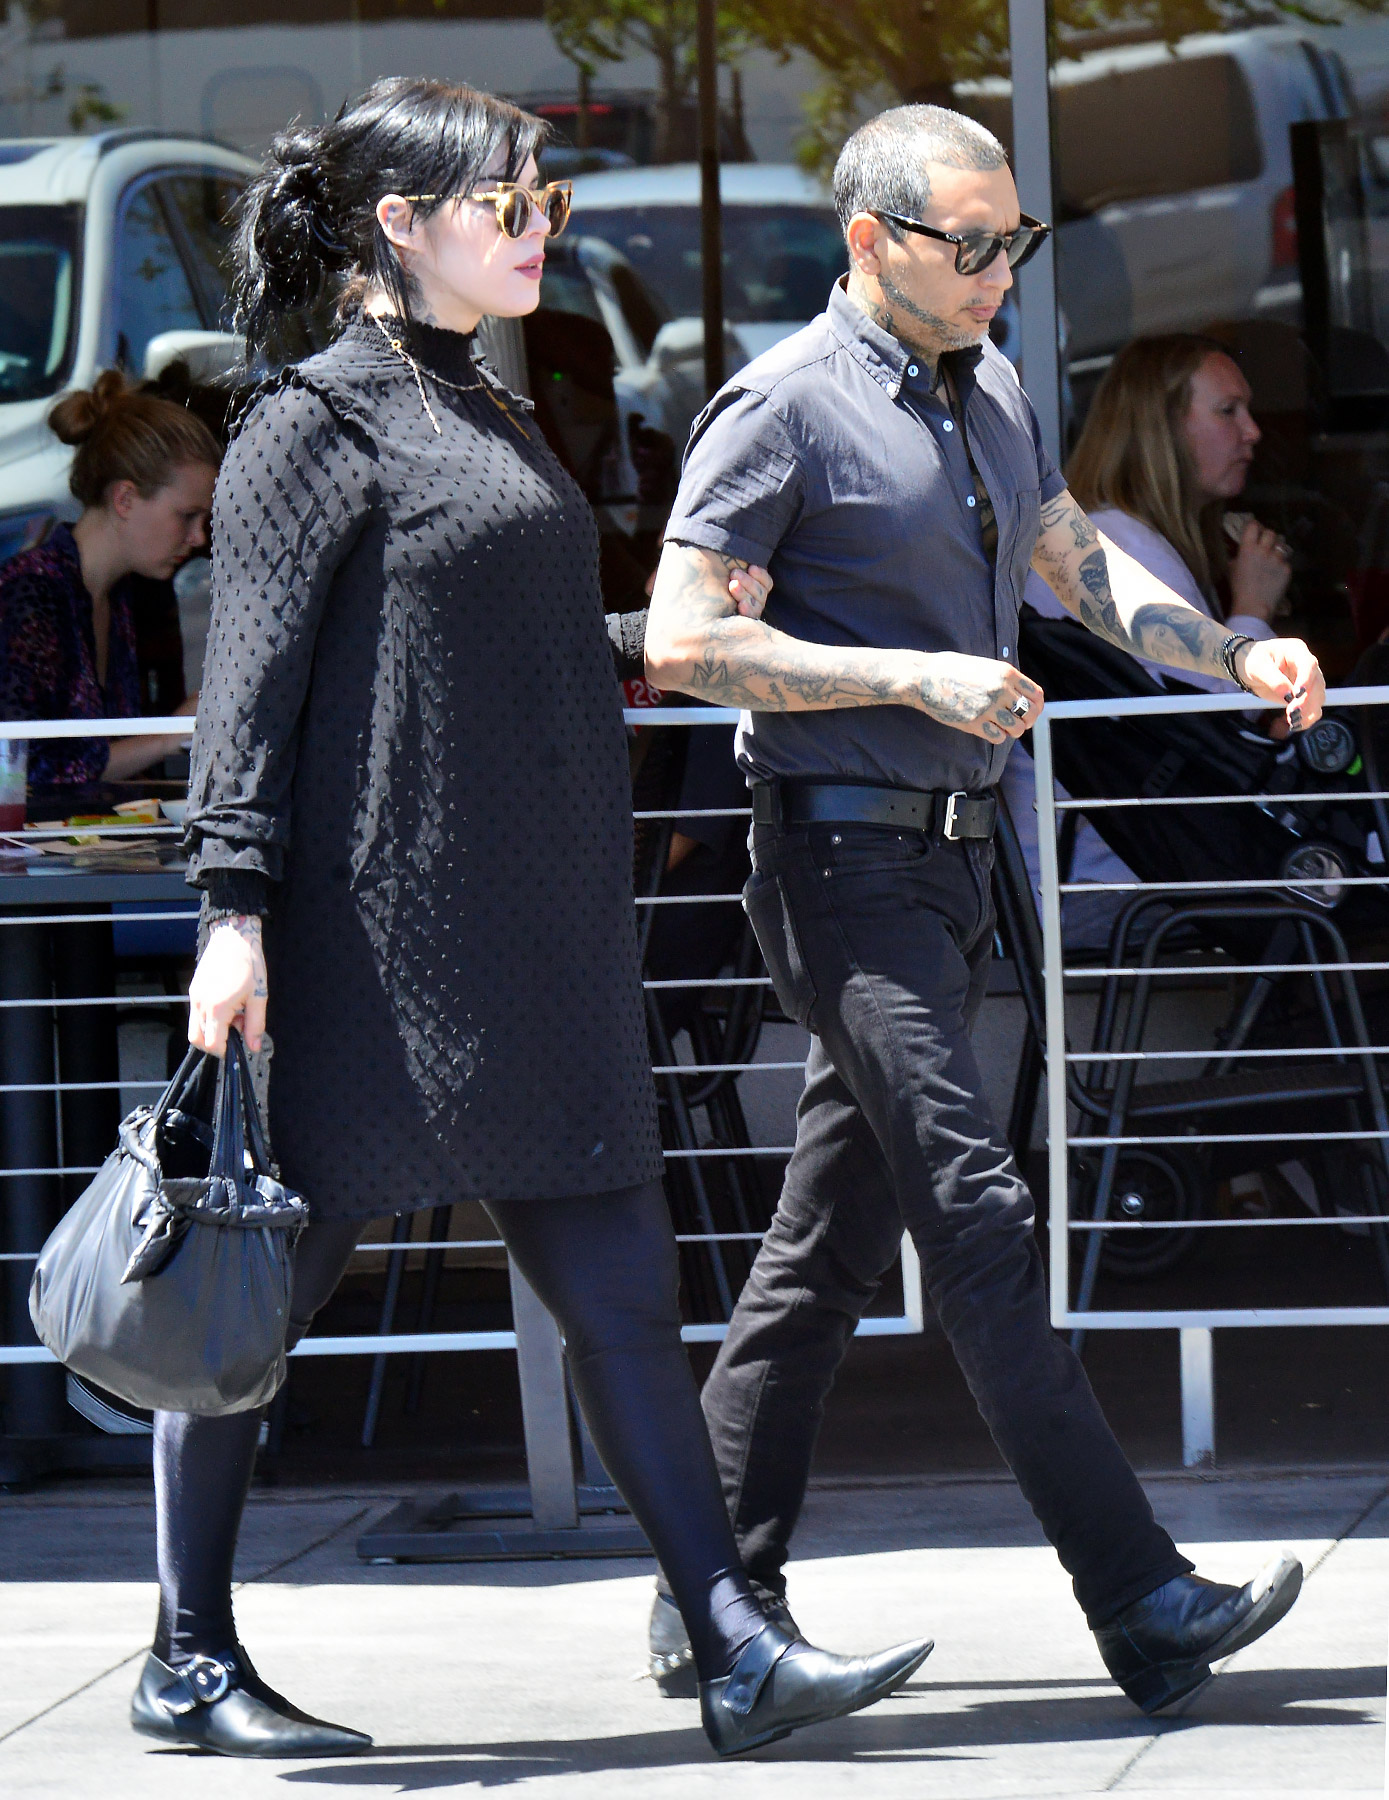 EXCLUSIVE: Tattoo Artist Kat Von D, who is several months pregnant with her first child is leaves Veggie Grill in West Hollywood, Ca with her husband Leafer Sayer